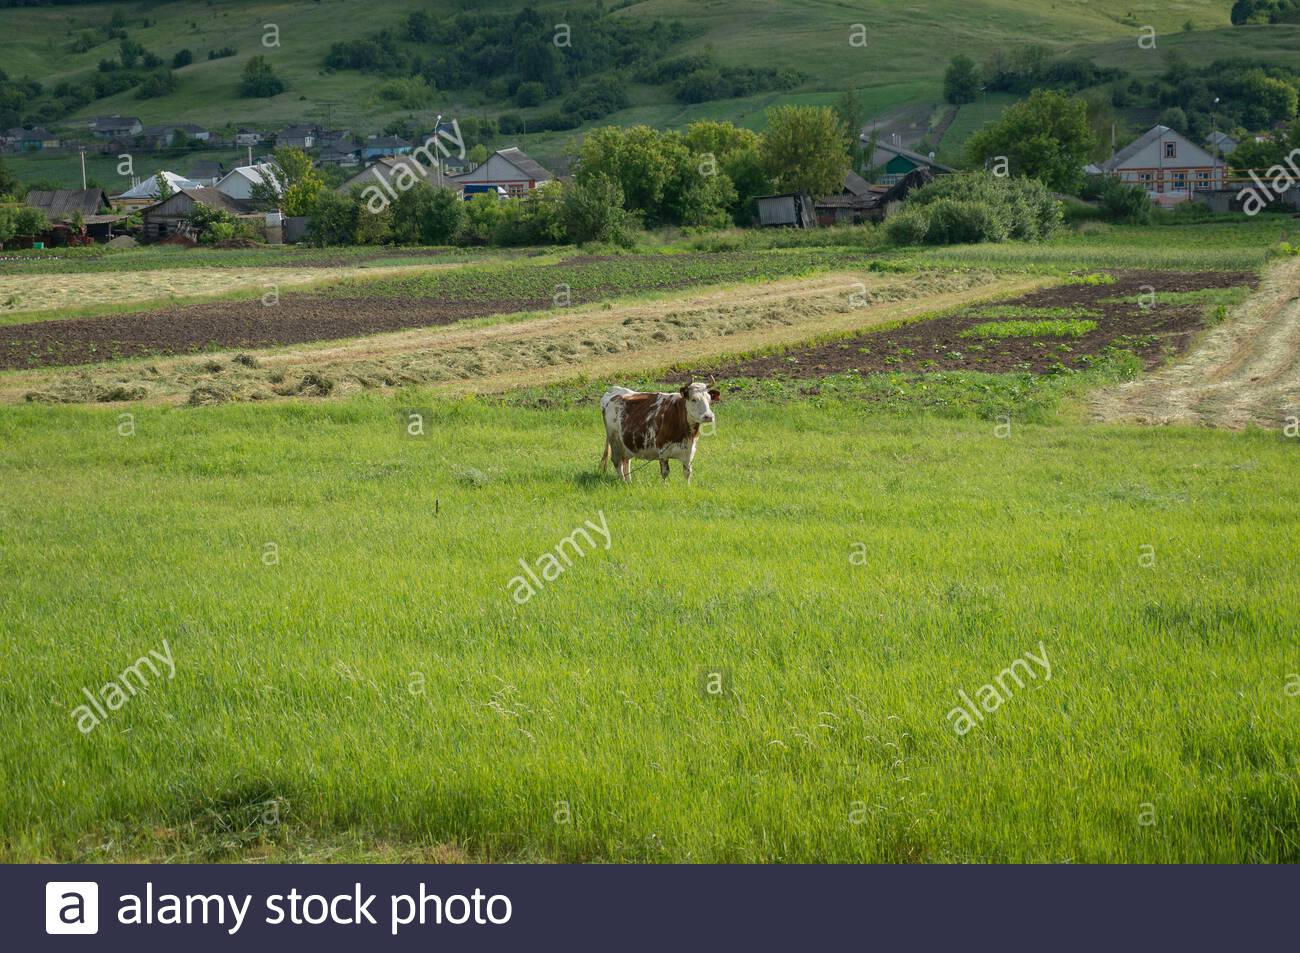 Horned milk cow on green pasture with village on the background 1300x953